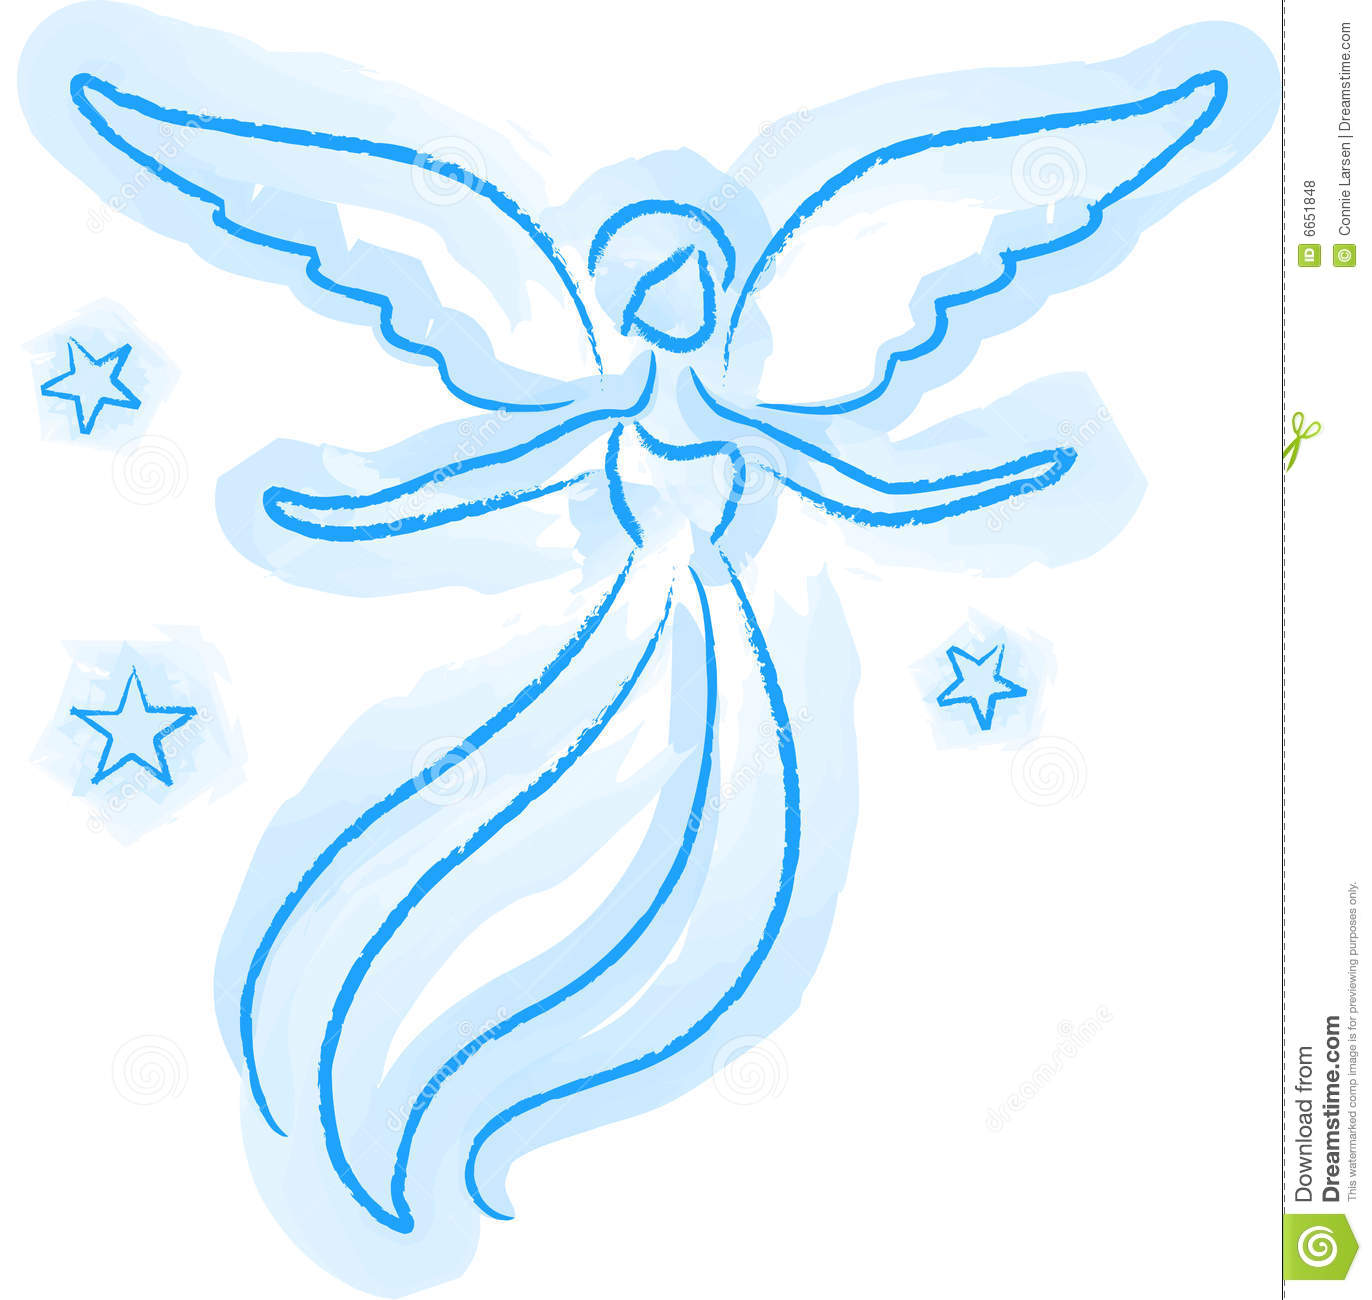 angel sketch stock illustration image of wings graphics 6651848